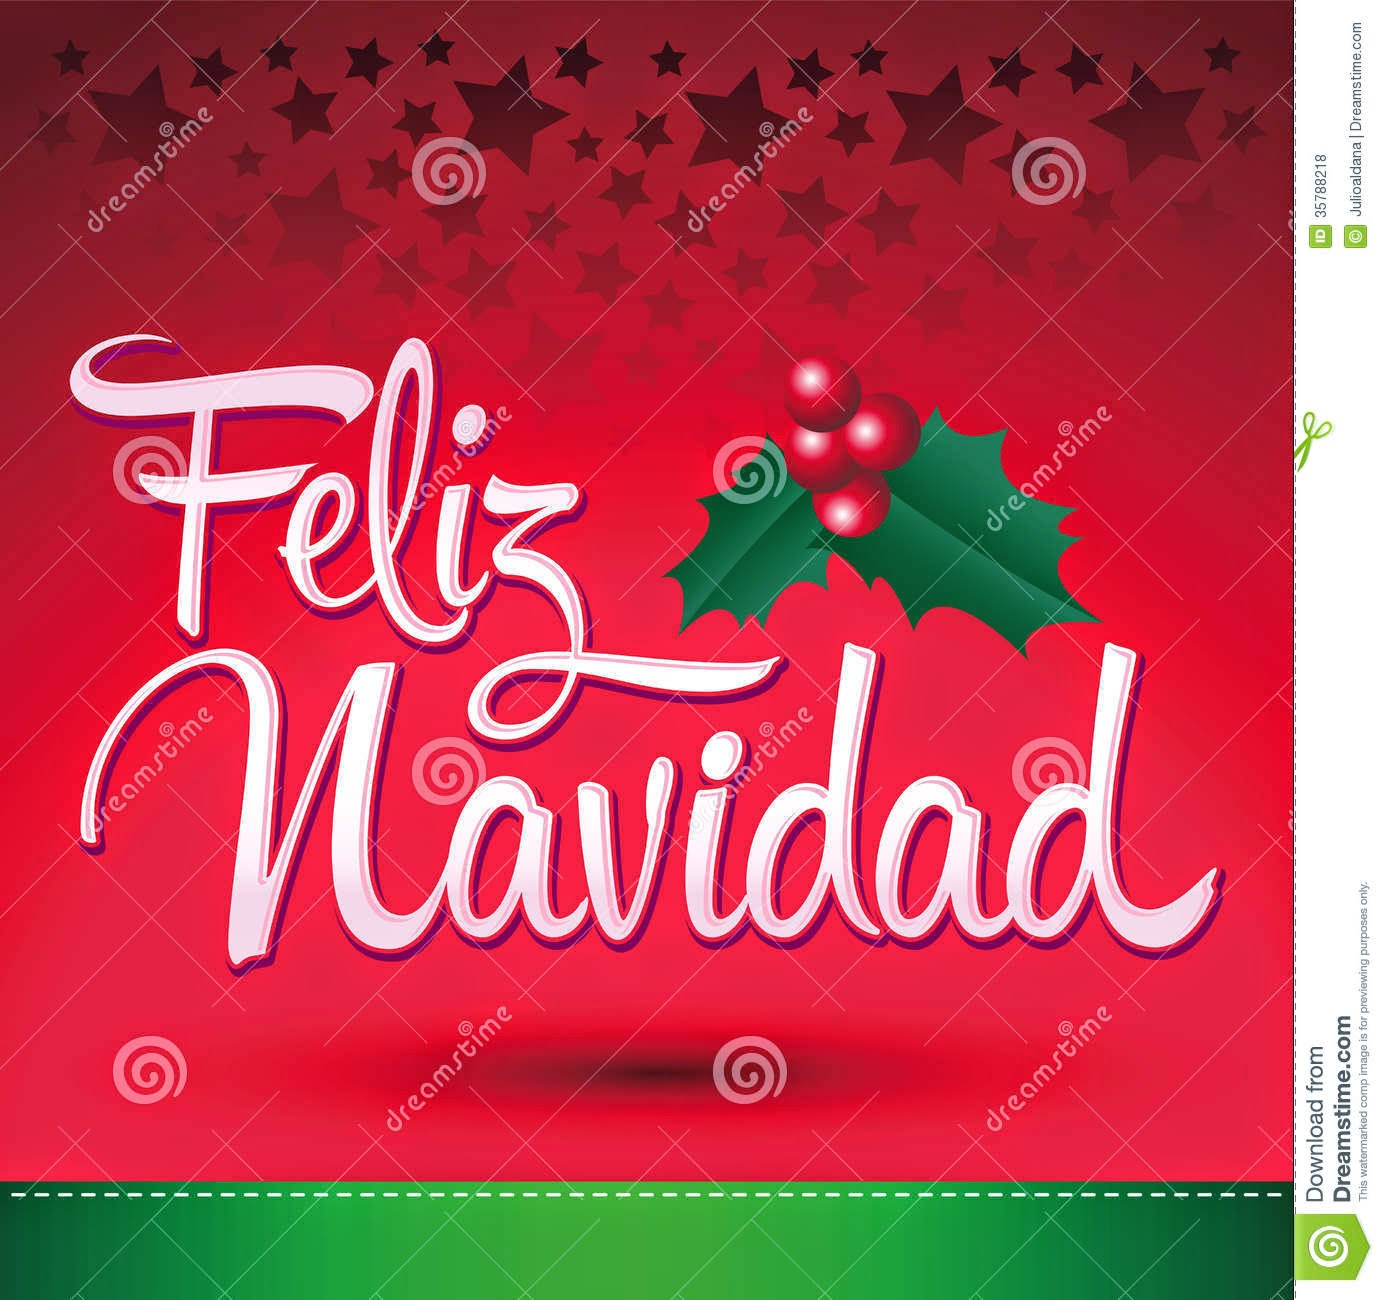 Merry christmas in spanish cards kristyandbryce Choice Image